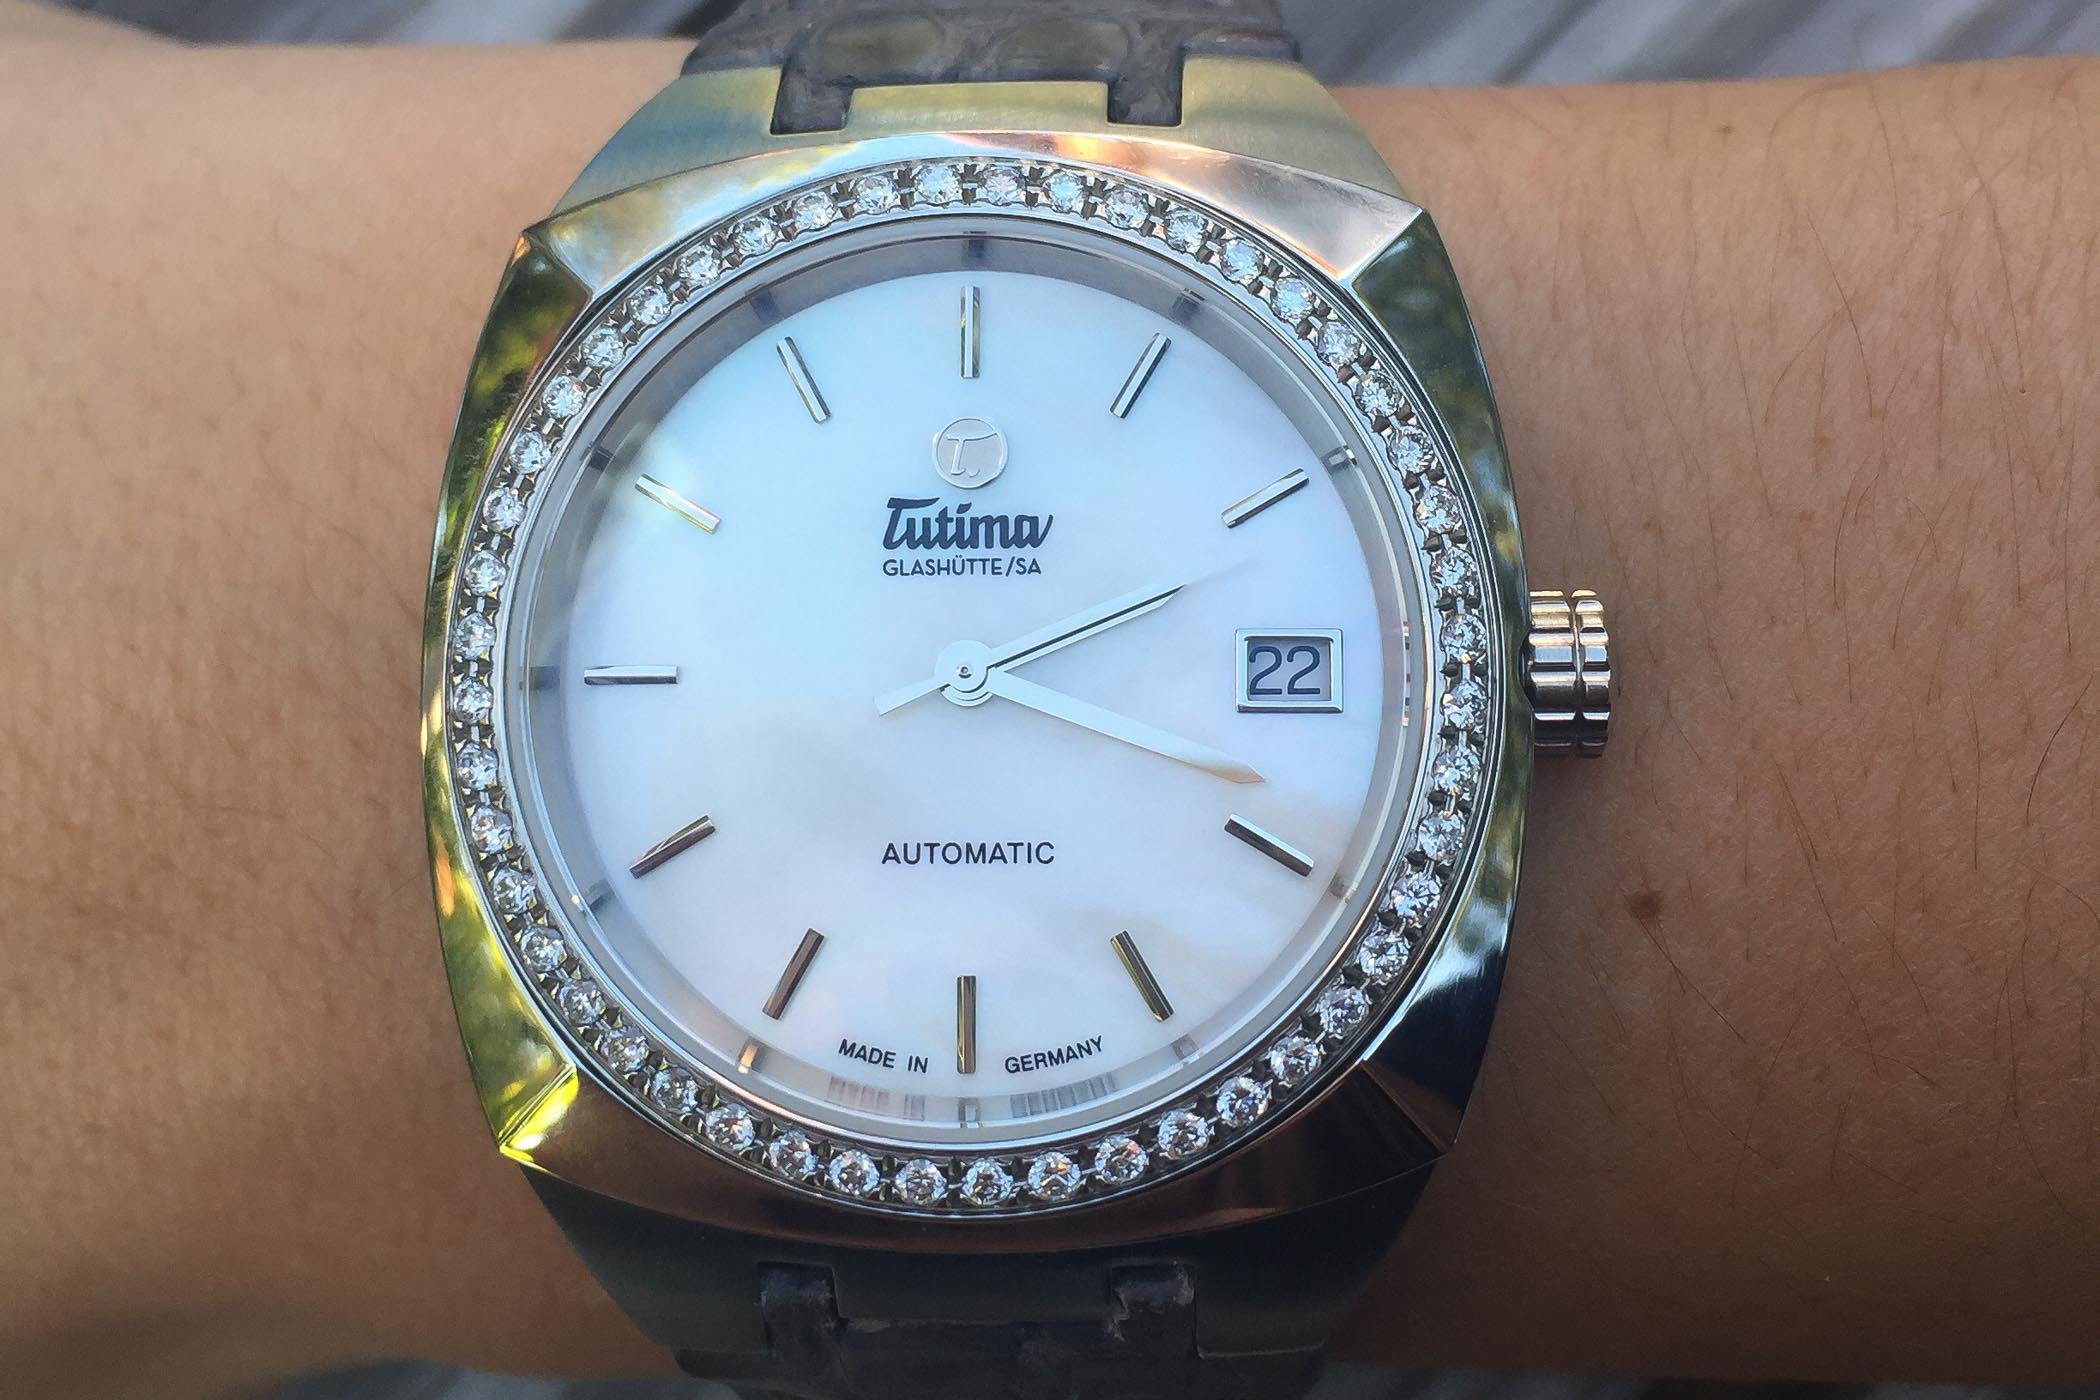 MONOCHROME – Women's Watch Wednesday – Reviewing the Tutima